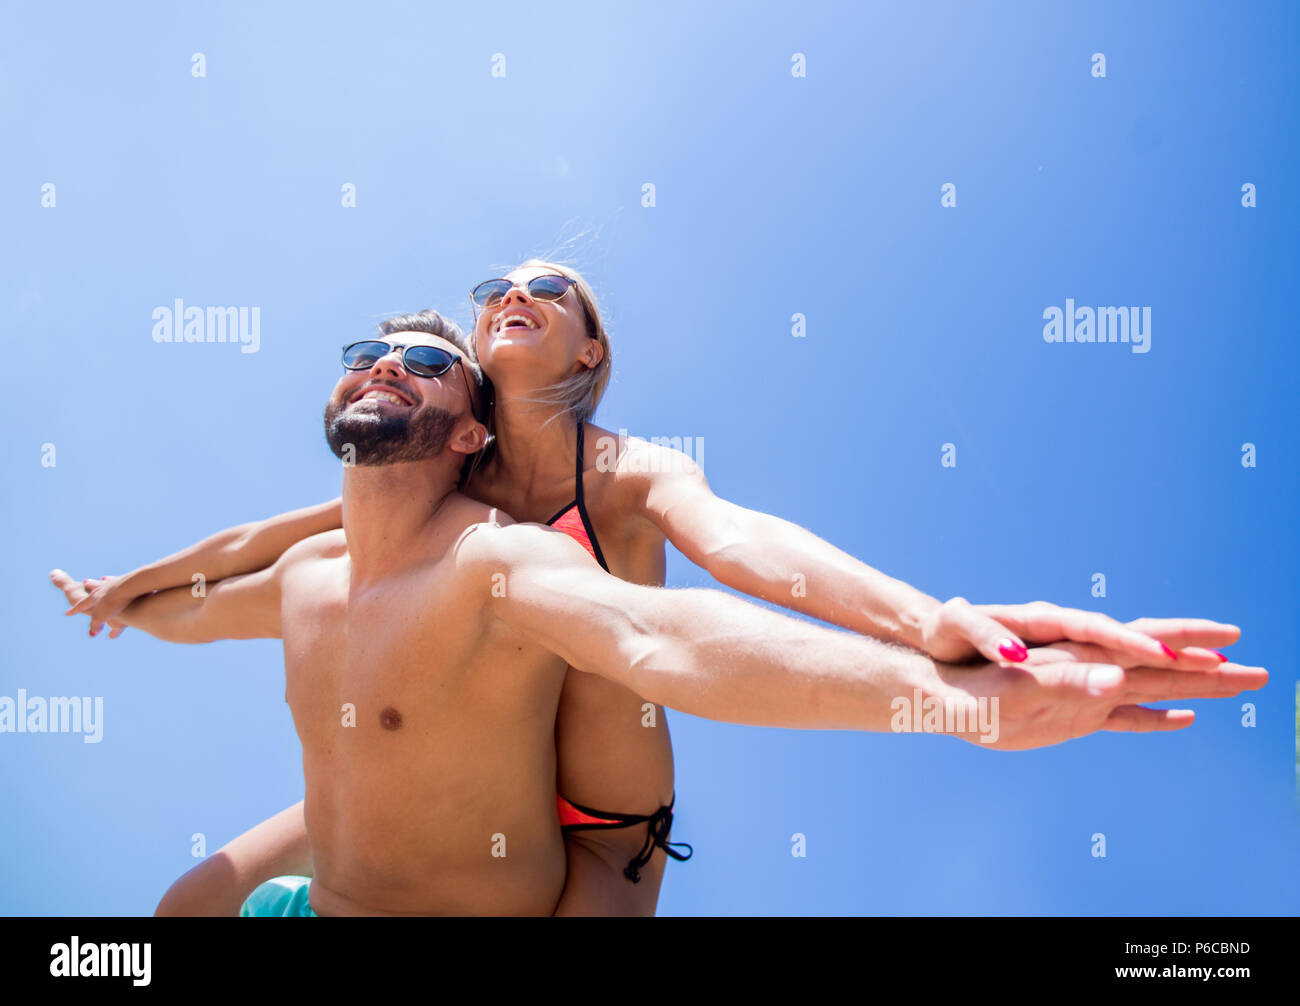 Man carrying woman piggyback on beach. - Stock Image